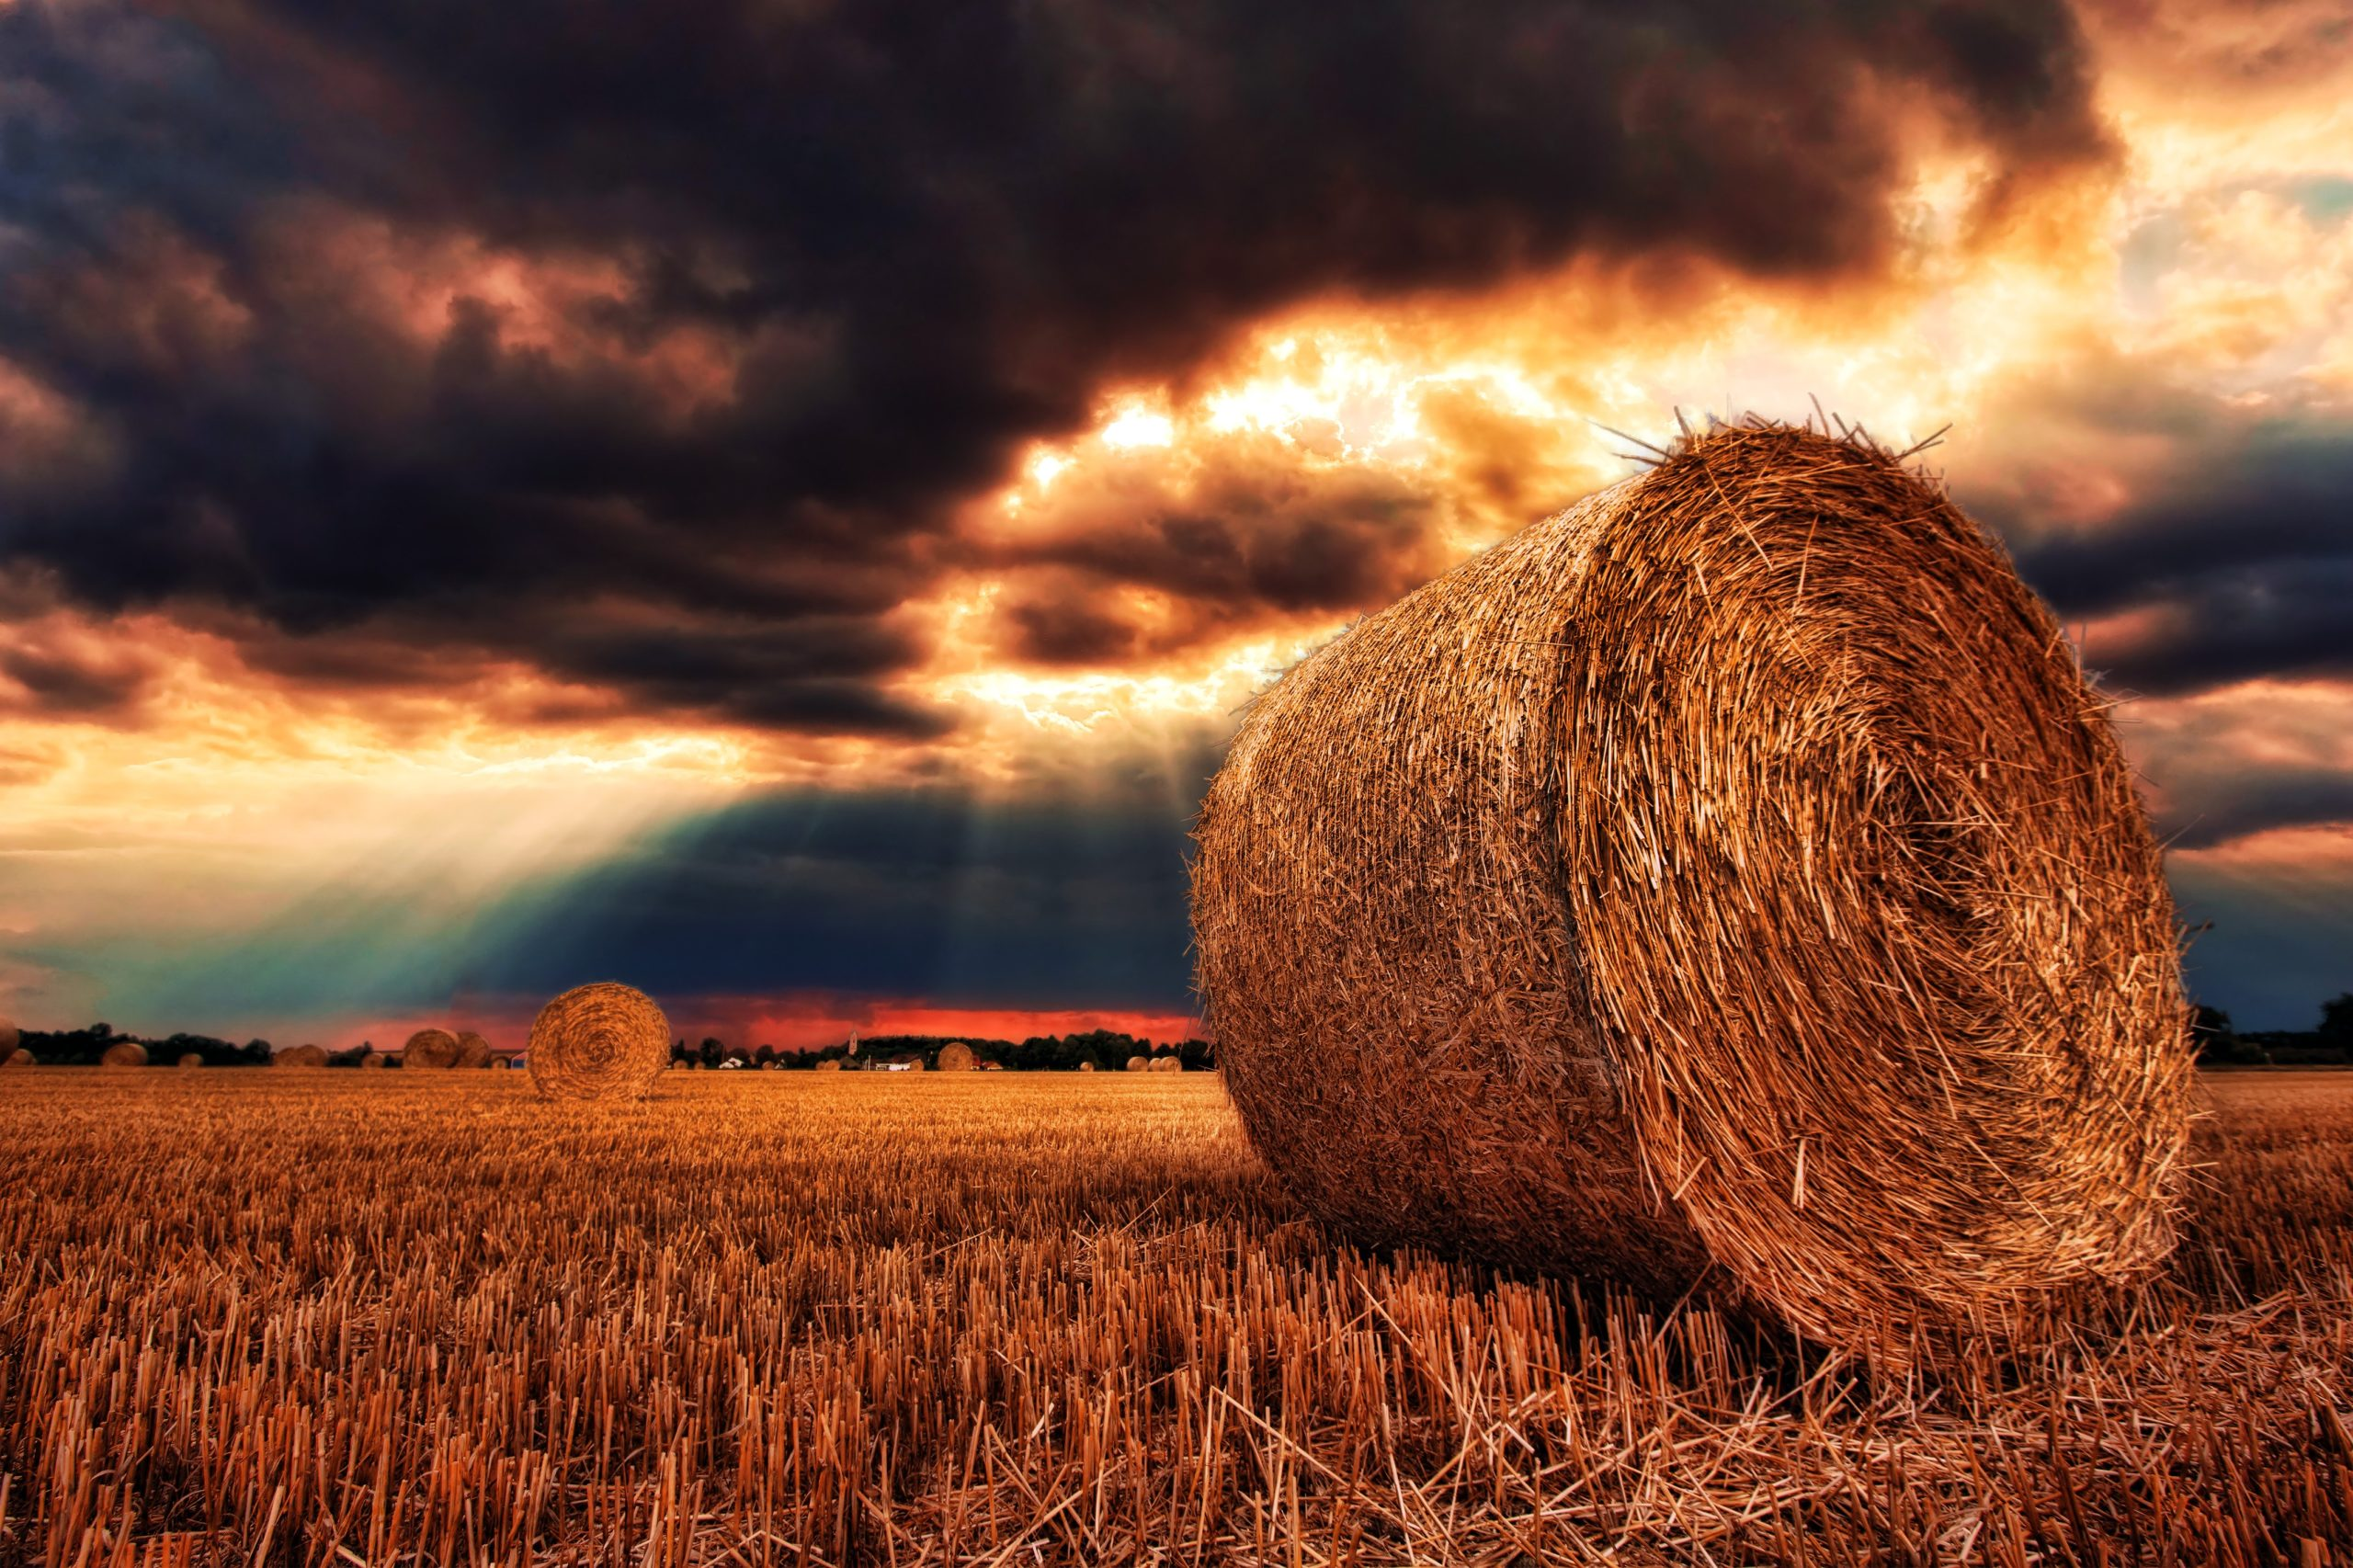 hay bale in field with overcast sky